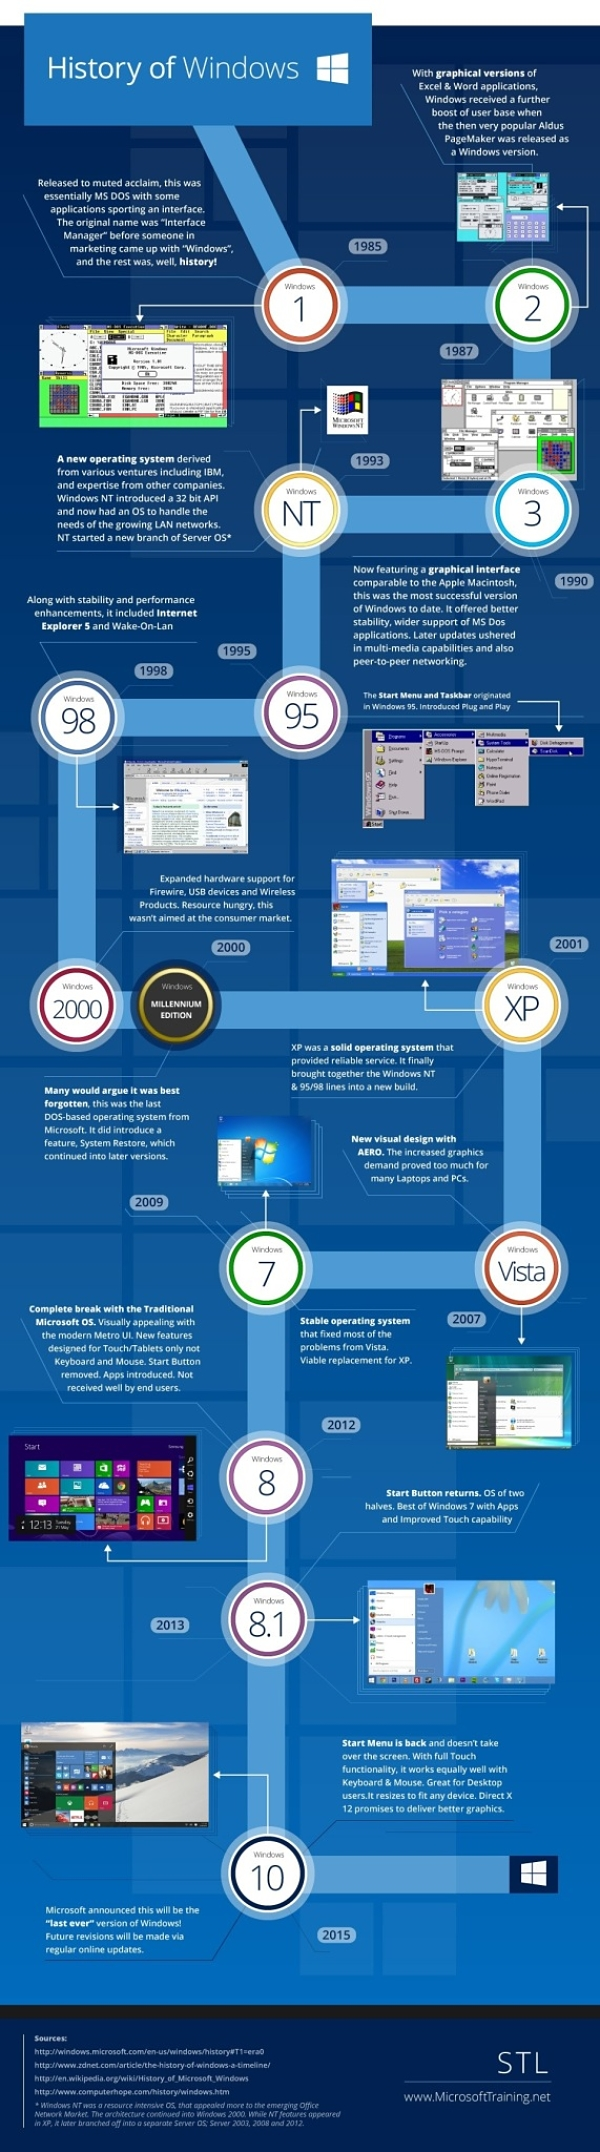 Infografia historia de Windows 1 a Windows 10